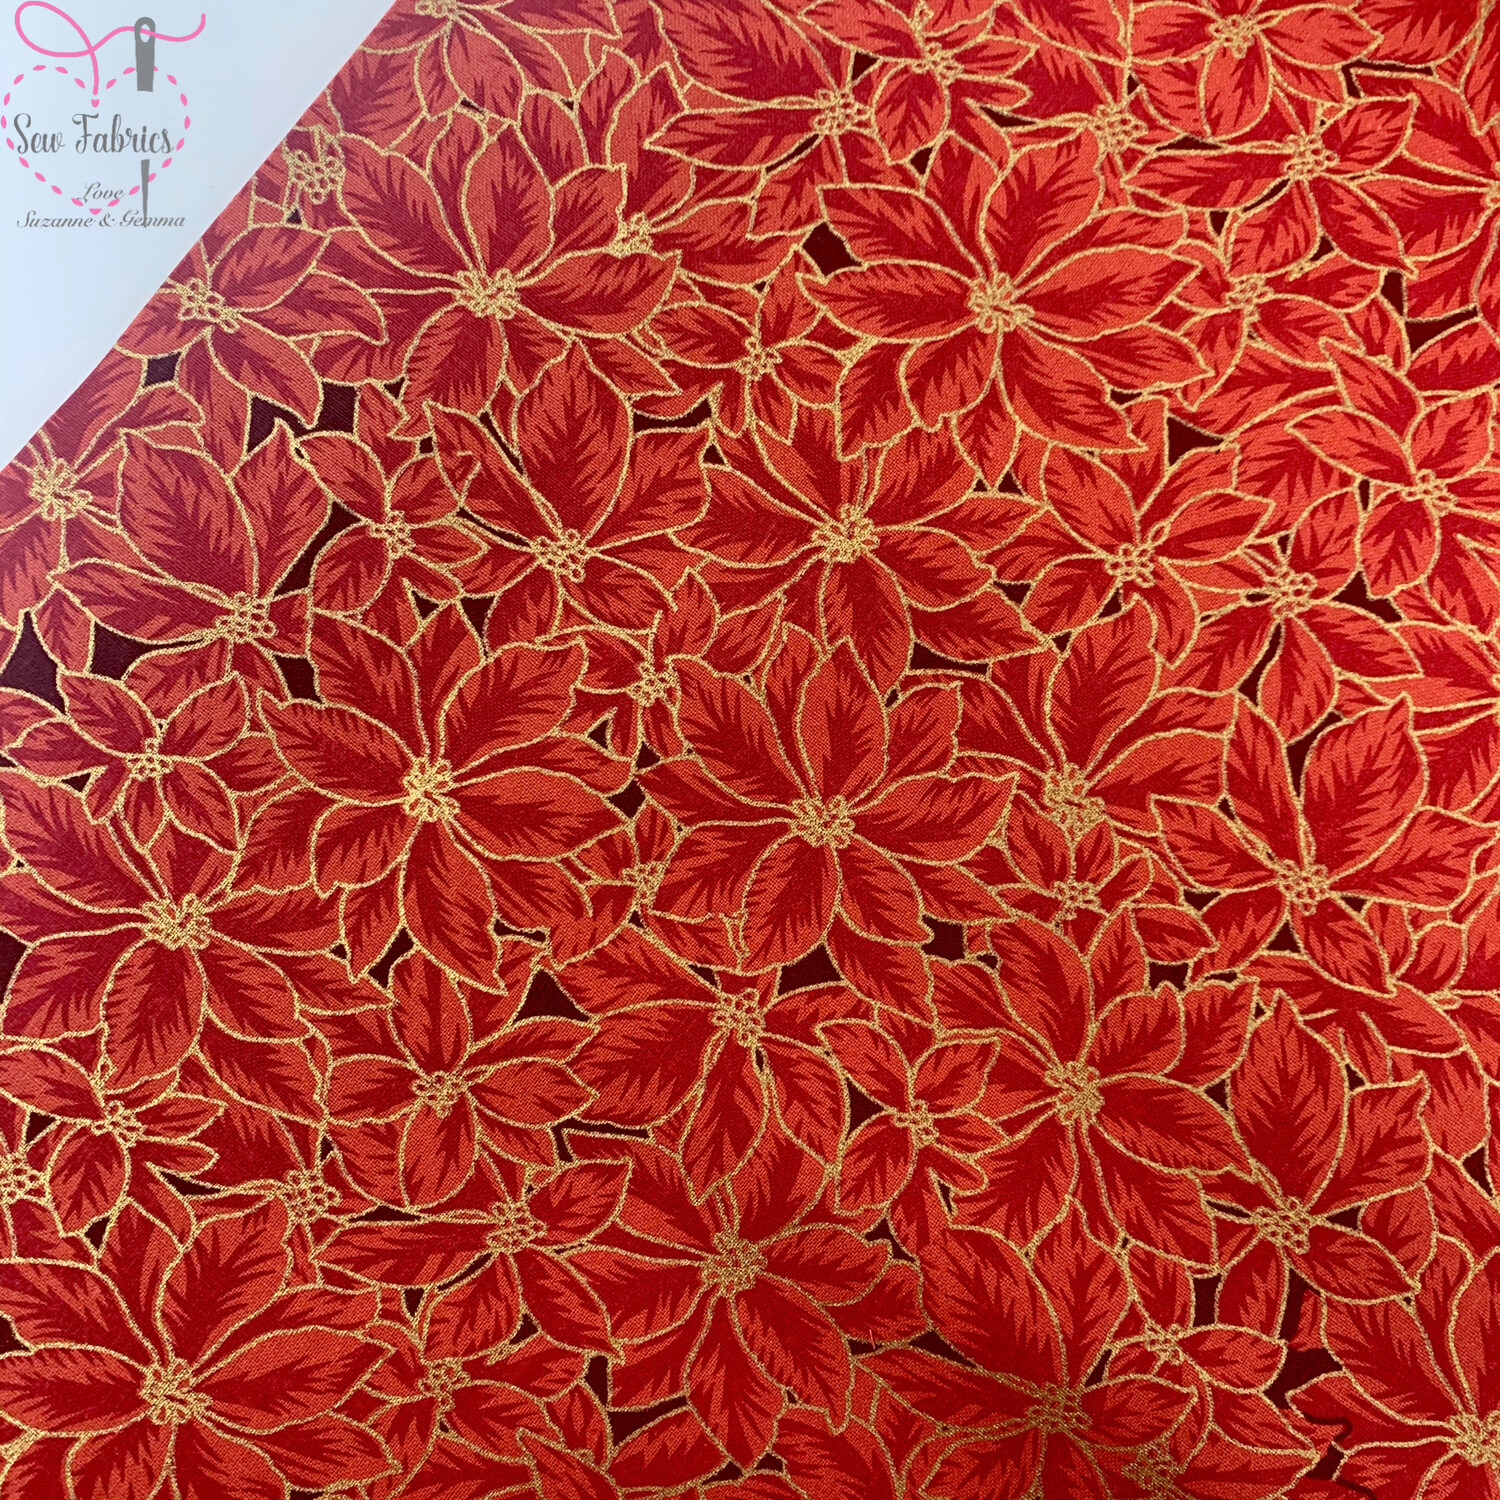 John Louden Red Poinsetta Christmas Print Fabric, 100% Cotton, Festive Novelty Material